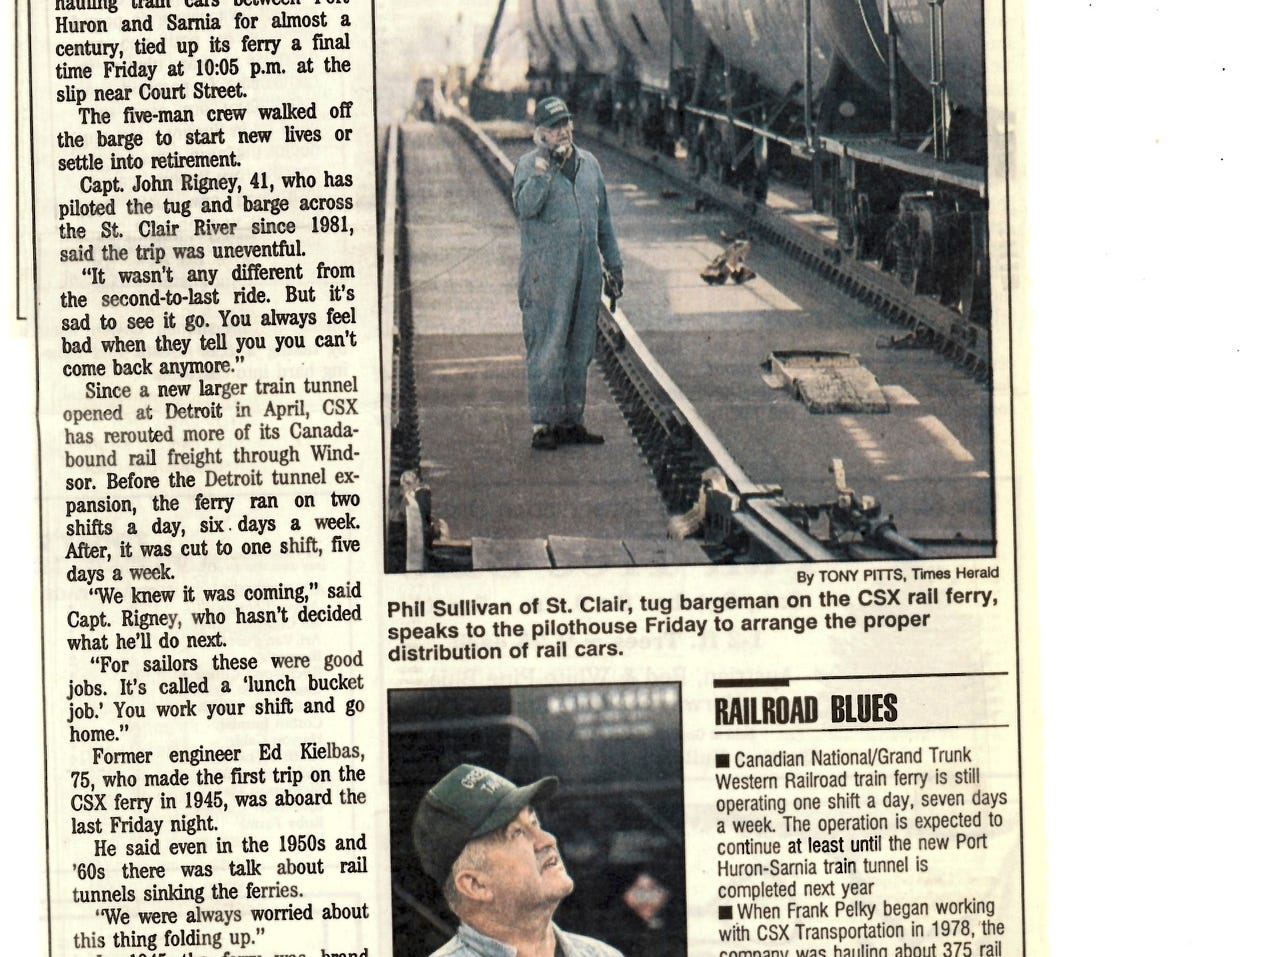 A newspaper clipping dated Oct. 8, 1994, tells the story of the final trip of the car ferry that transported rail cars between Port Huron and Sarnia. CSX began rerouting its trains through a tunnel that opened in Detroit the previous April, which led to the ferry operating on fewer shifts.